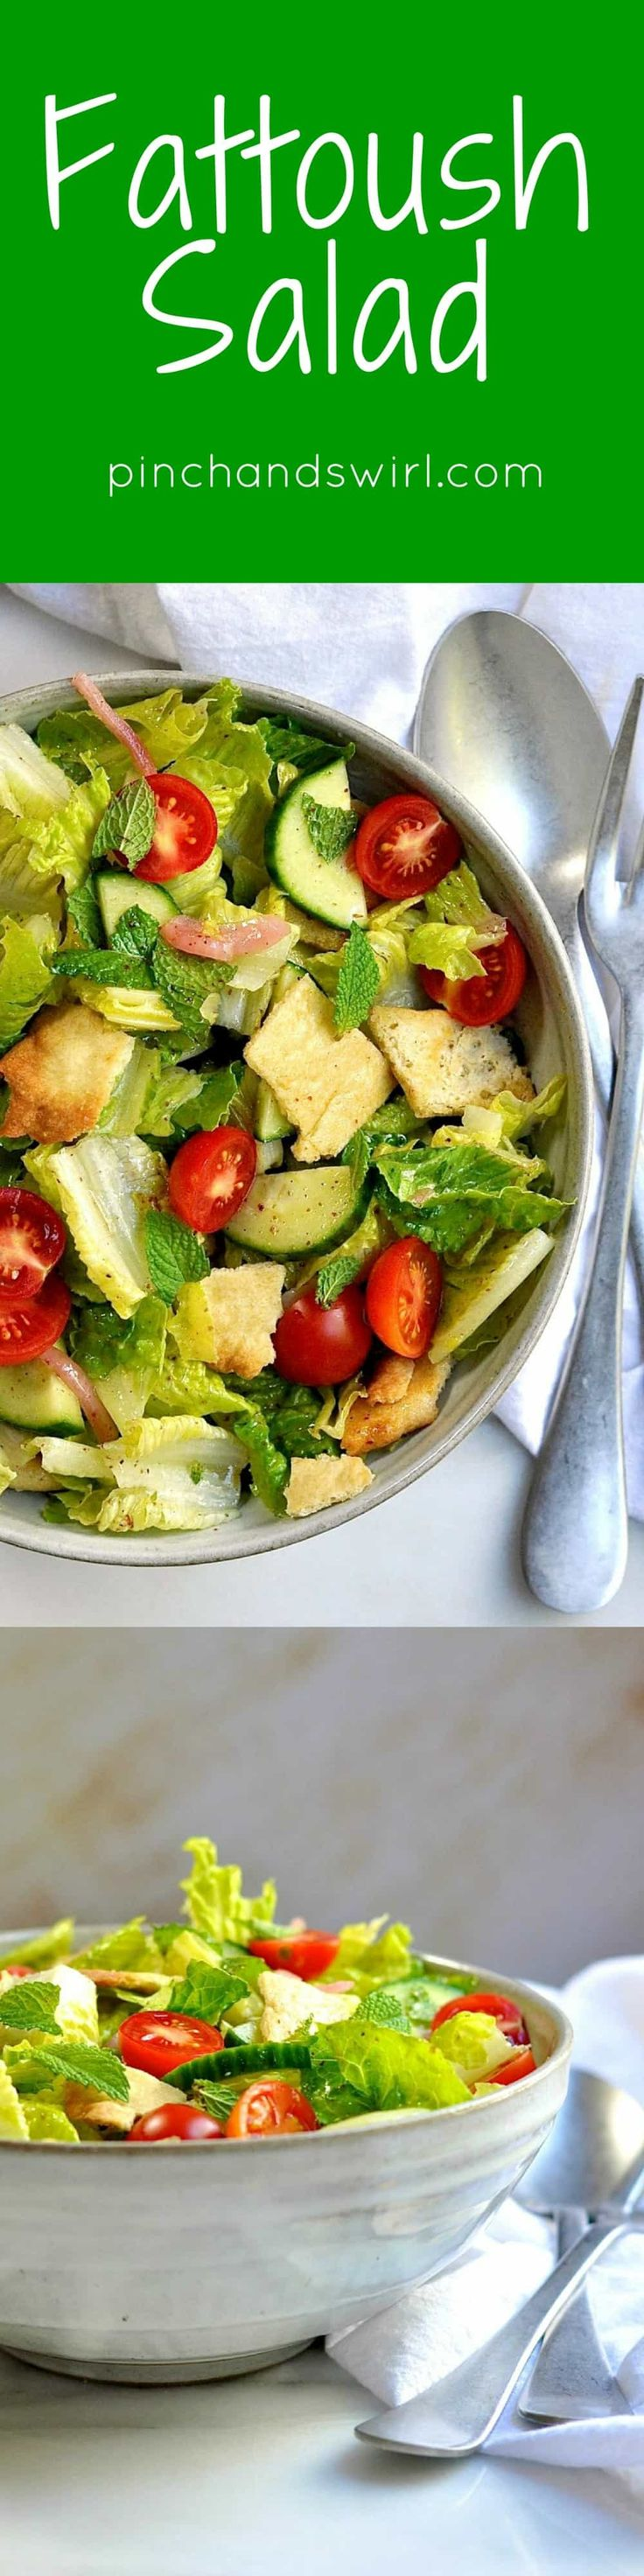 Fattoush is a Lebanese salad of crisp lettuce, crunchy vegetables, toasted bites of pita bread and a tangy sumac dressing! A perfect way to use leftover pita bread, this fattoush salad recipe comes together in minutes and is hearty enough to be a meal on its own.